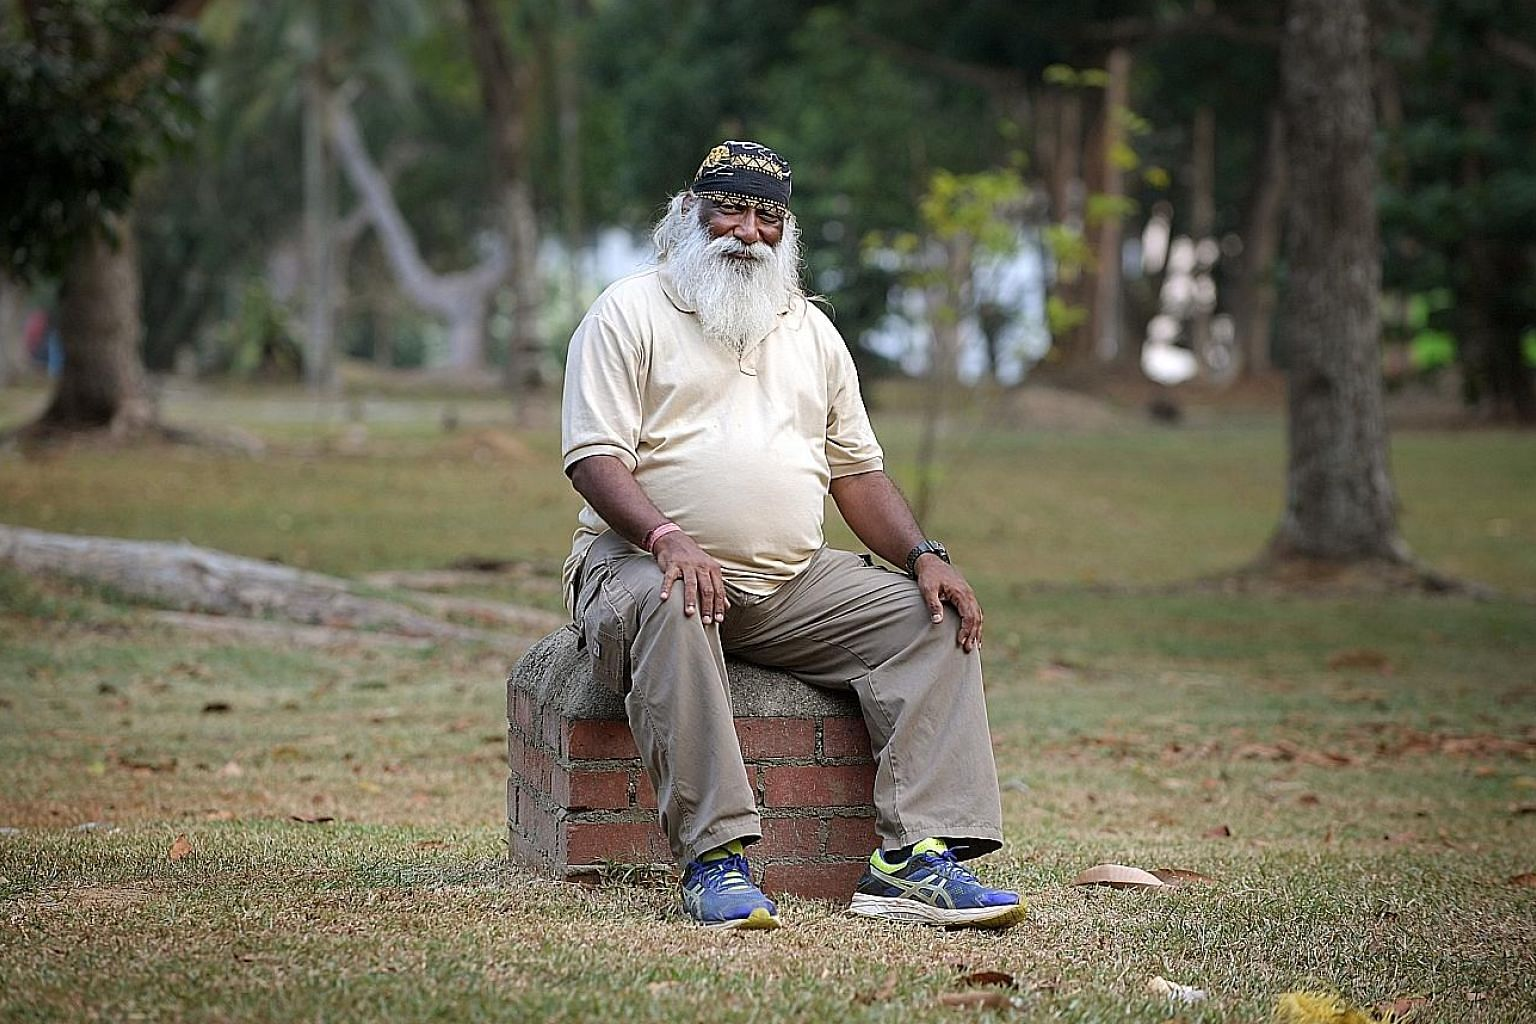 Mr Subaraj Rajathurai, seen here in a photo taken last month, died of a heart attack during a nap on Tuesday. He was well known for being an outspoken advocate for Singapore's native wildlife.